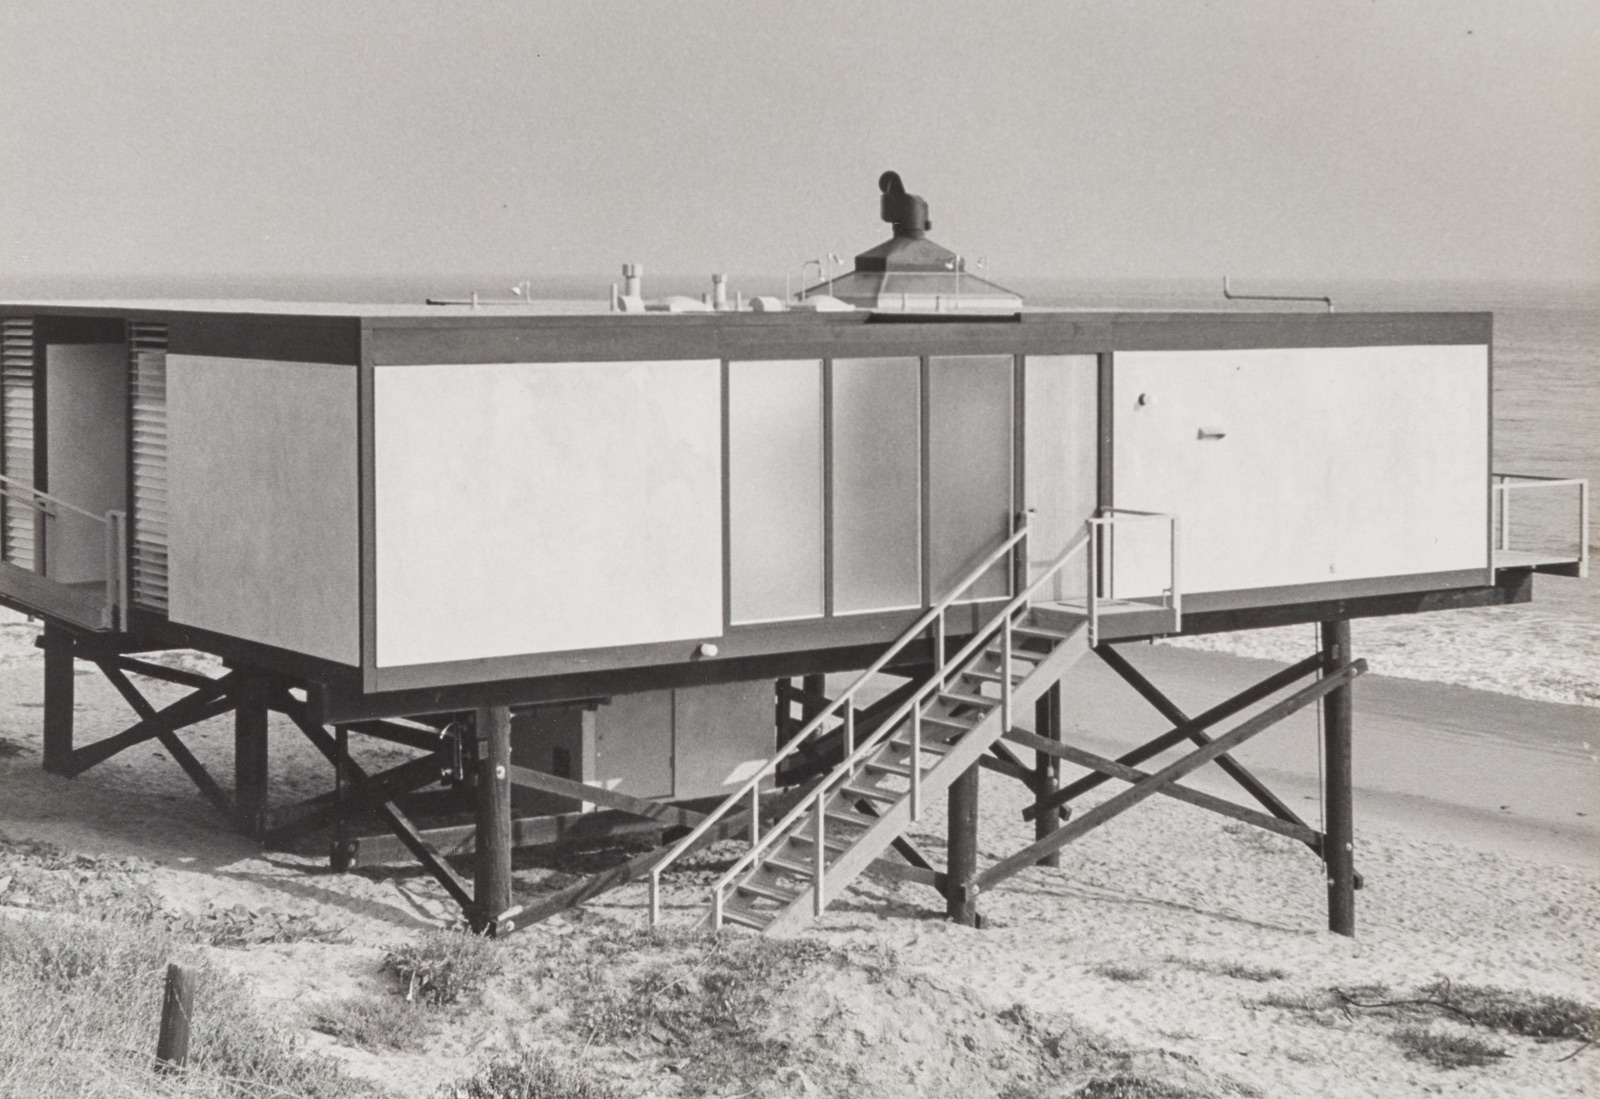 Exterior view of Craig Ellwood's Hunt House showcasing its setting on stilts on the beach in Malibu, California.